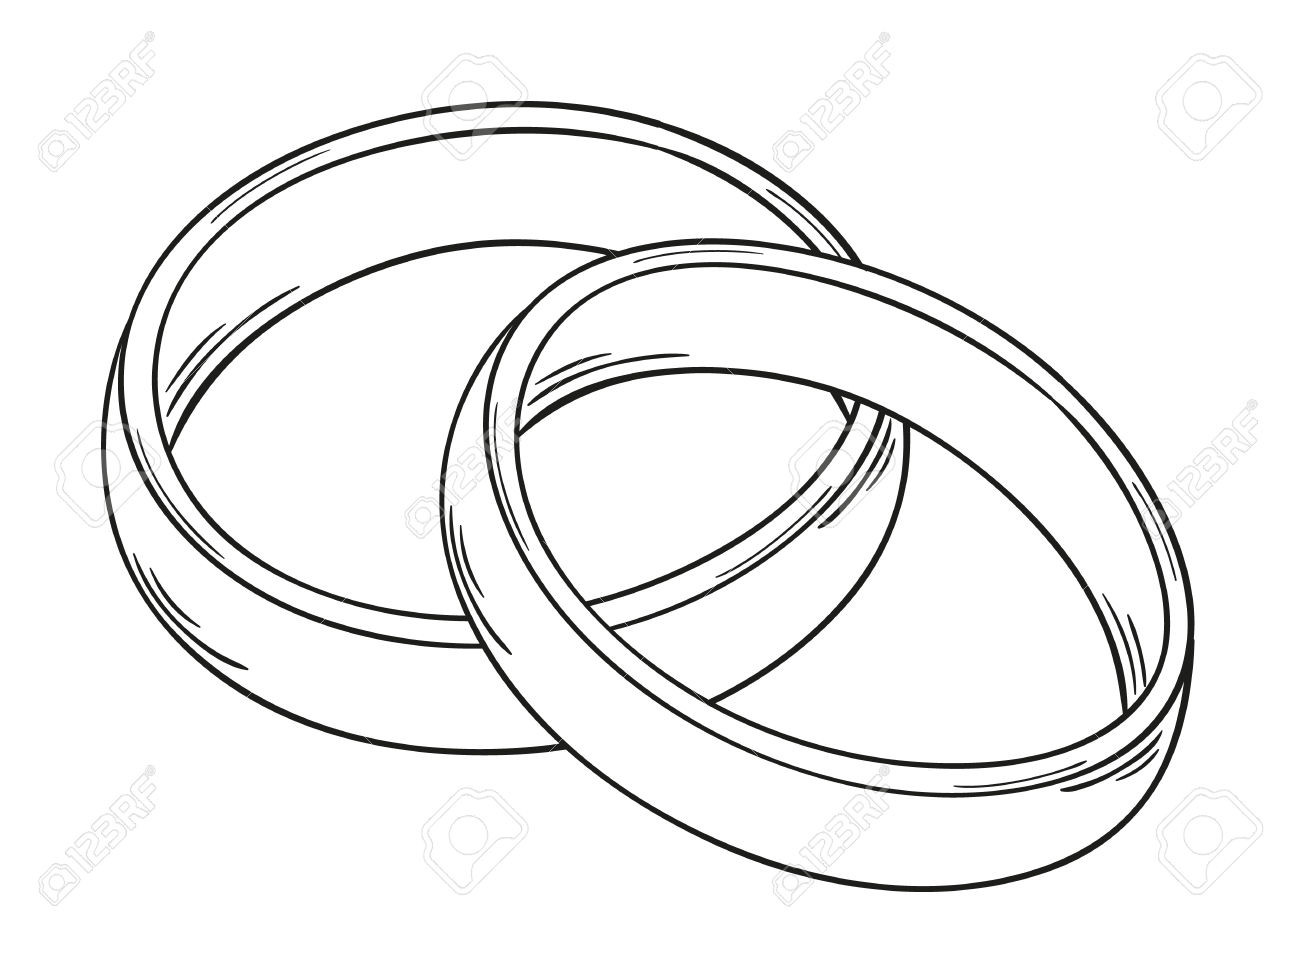 Marriage Rings Symbol Clipart Inspiration Von Hochzeit